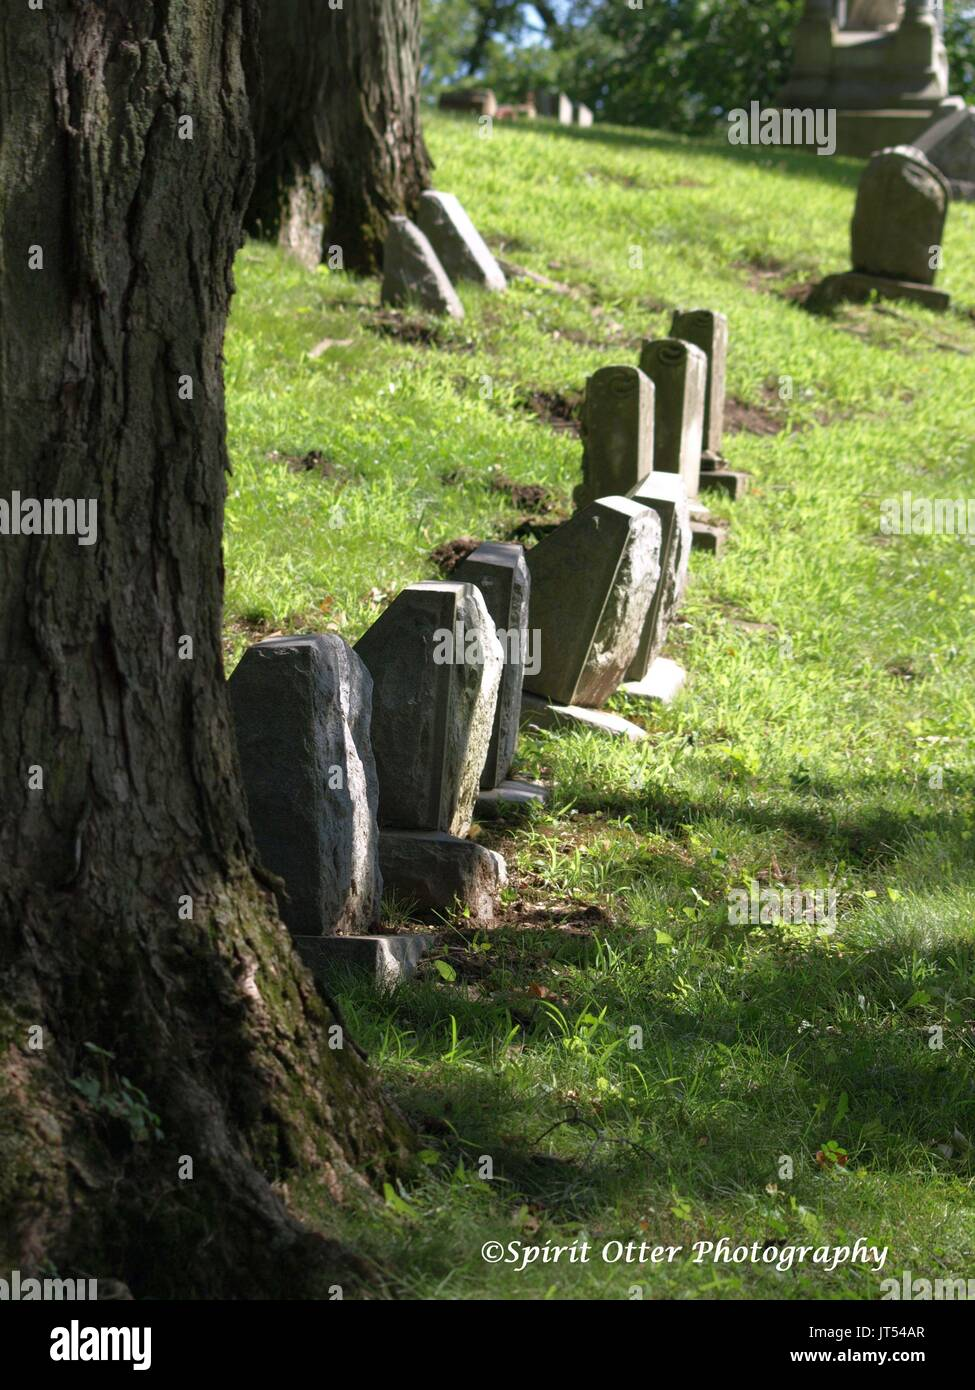 An older peaceful resting place of the dead, no names shown - Stock Image